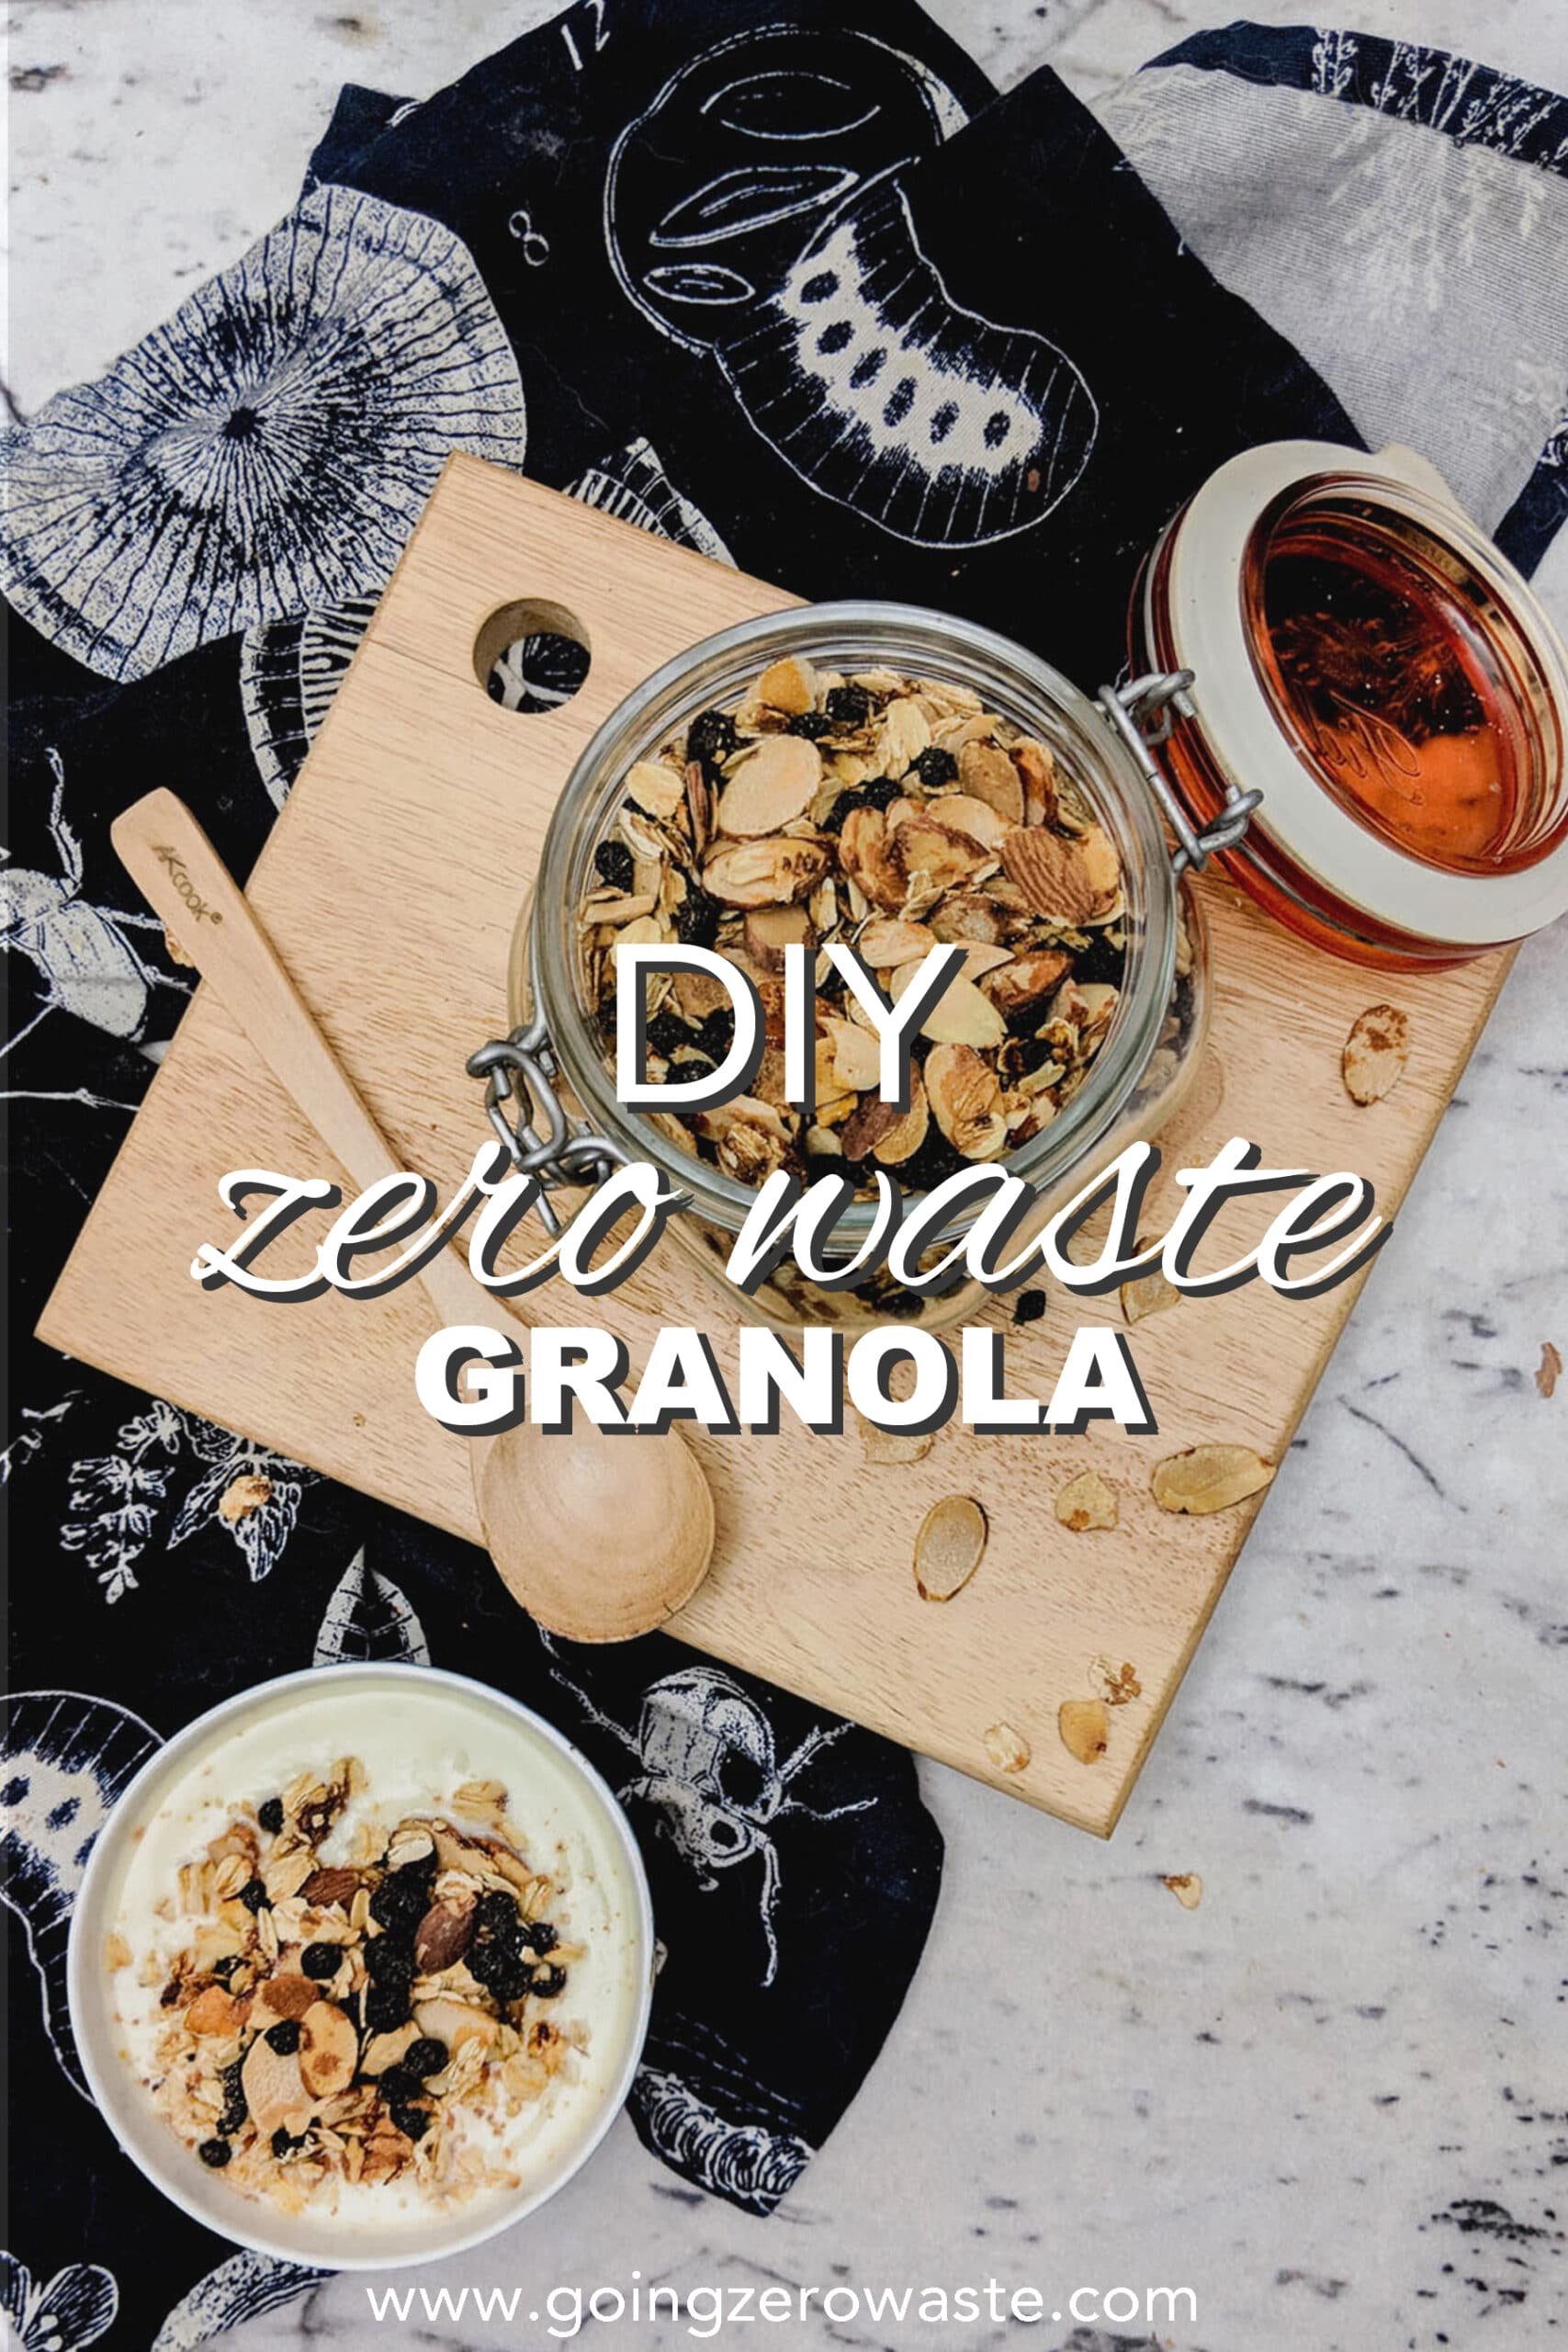 DIY, Zero Waste Granola with Dried Blueberries